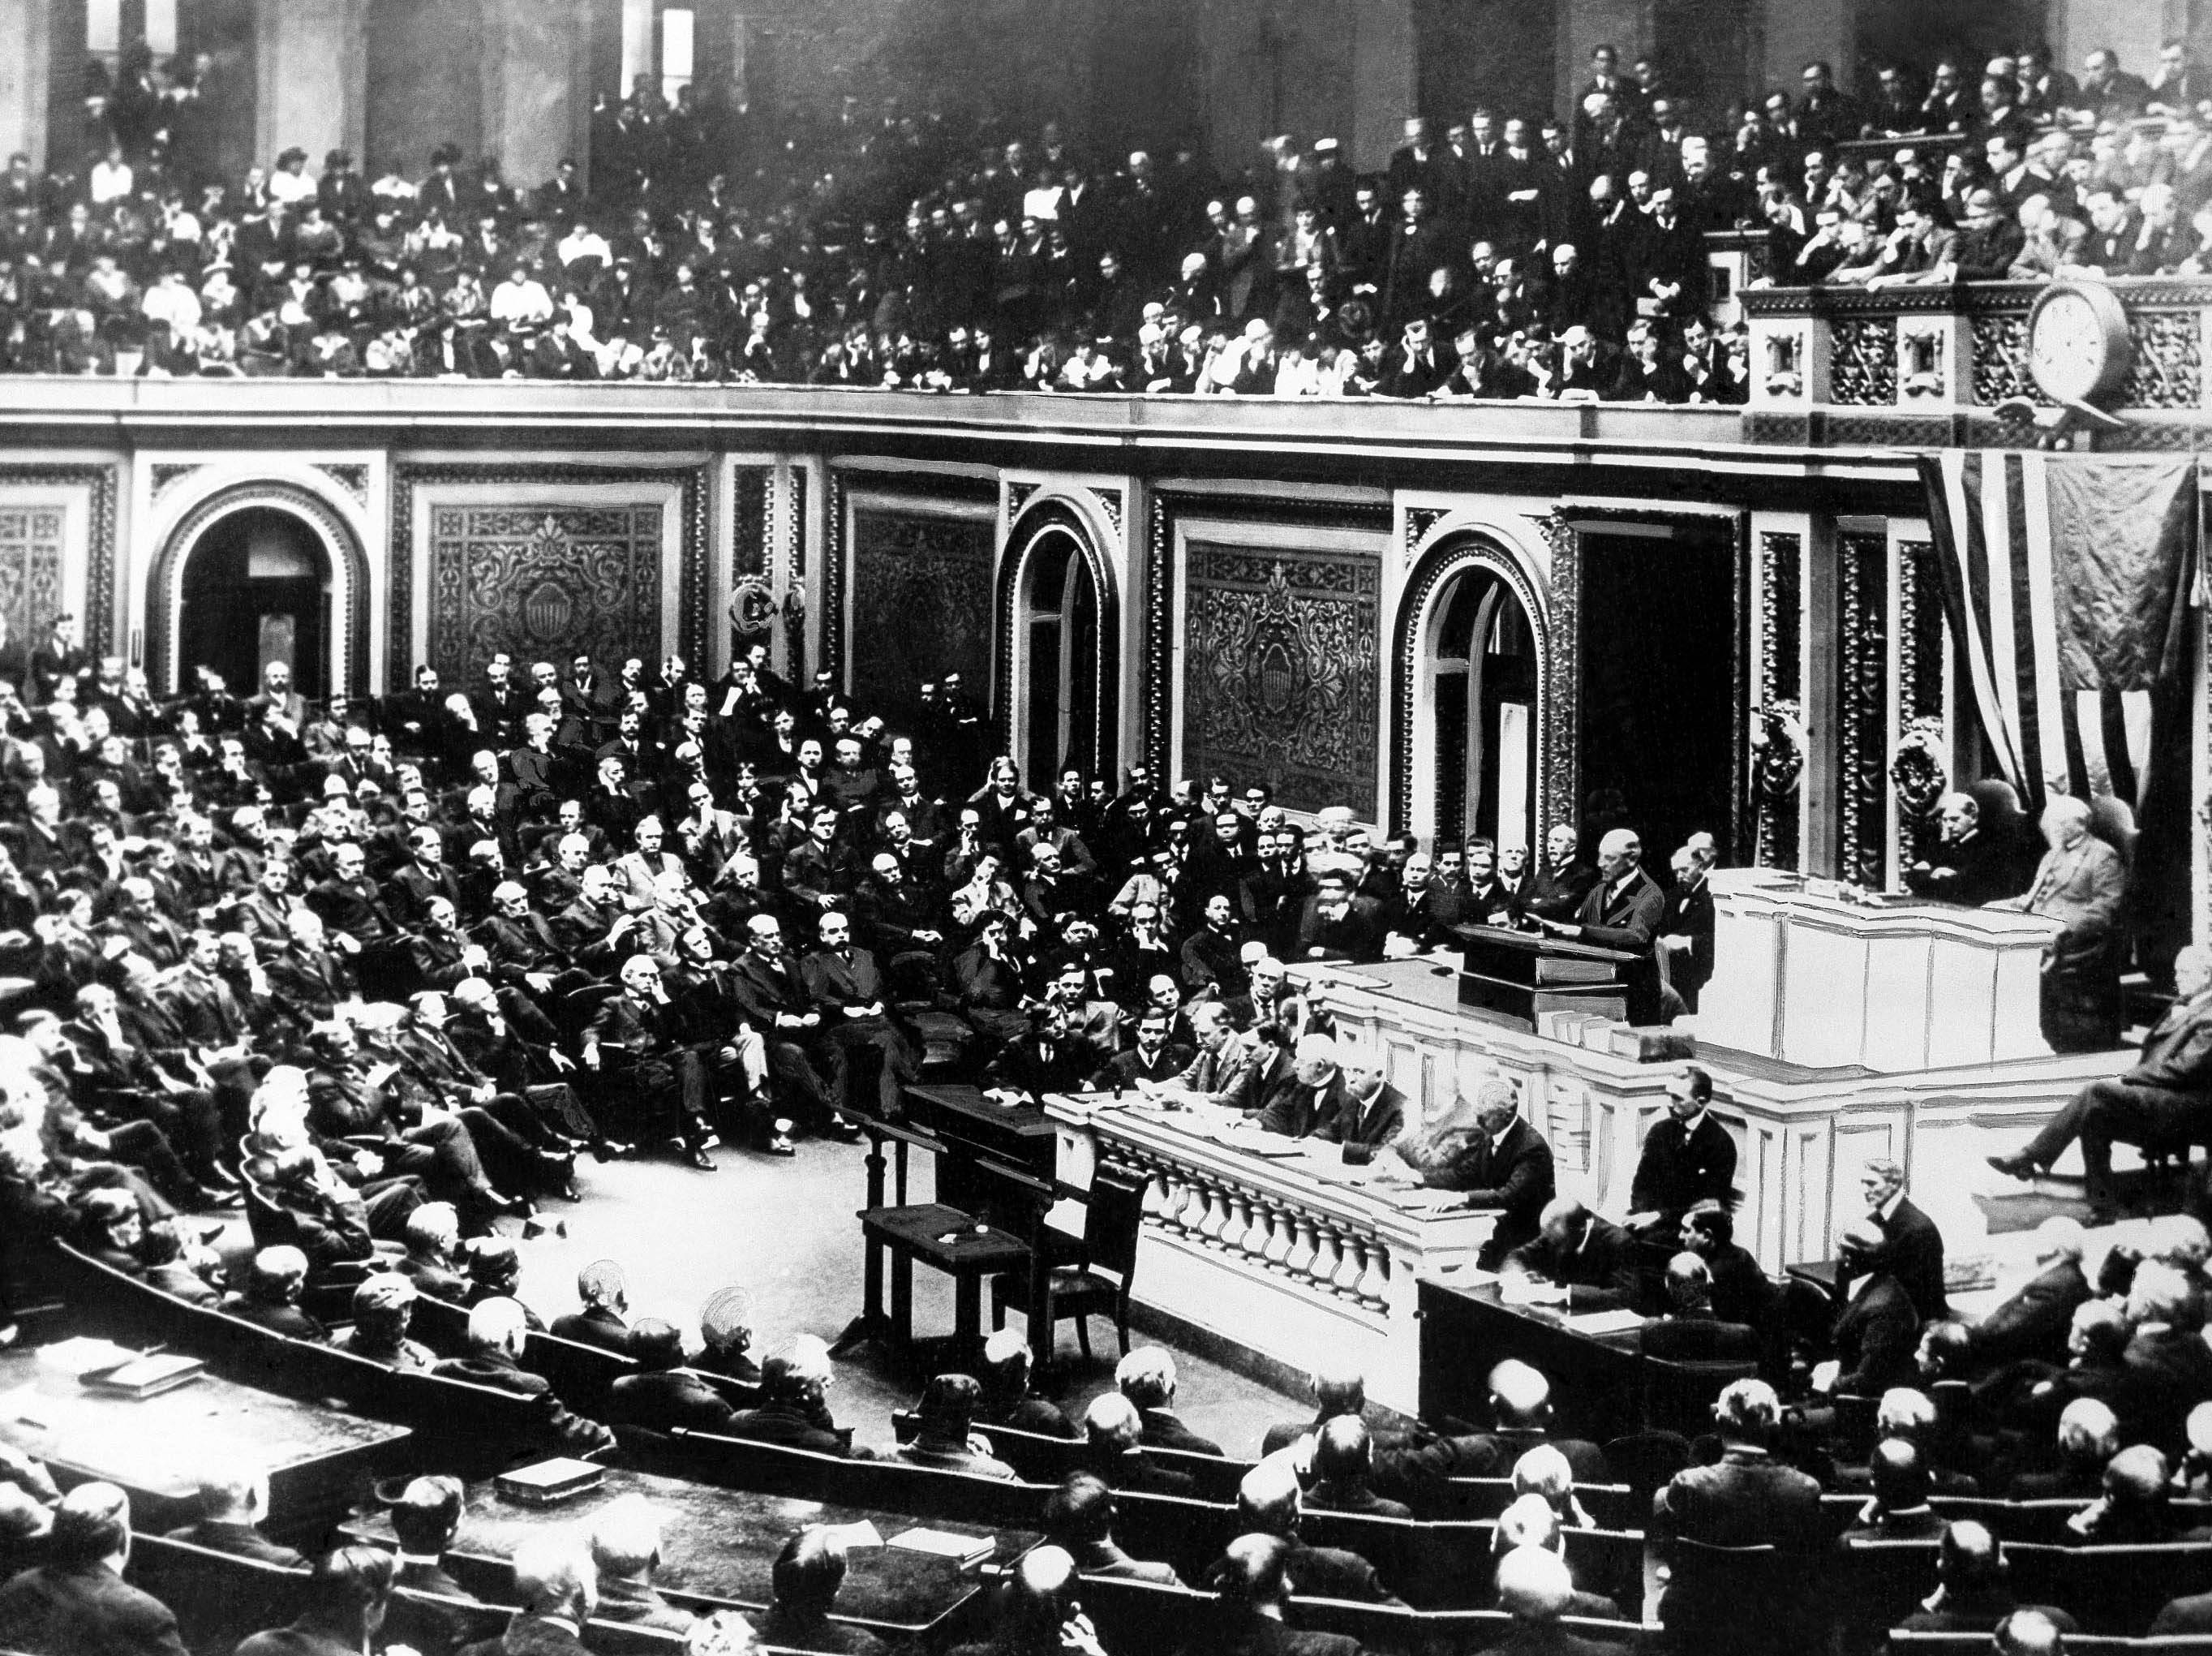 60 OF 100: In this April 2, 1917 file photo, President Woodrow Wilson delivers a speech to the joint session of Congress in Washington during World War I.